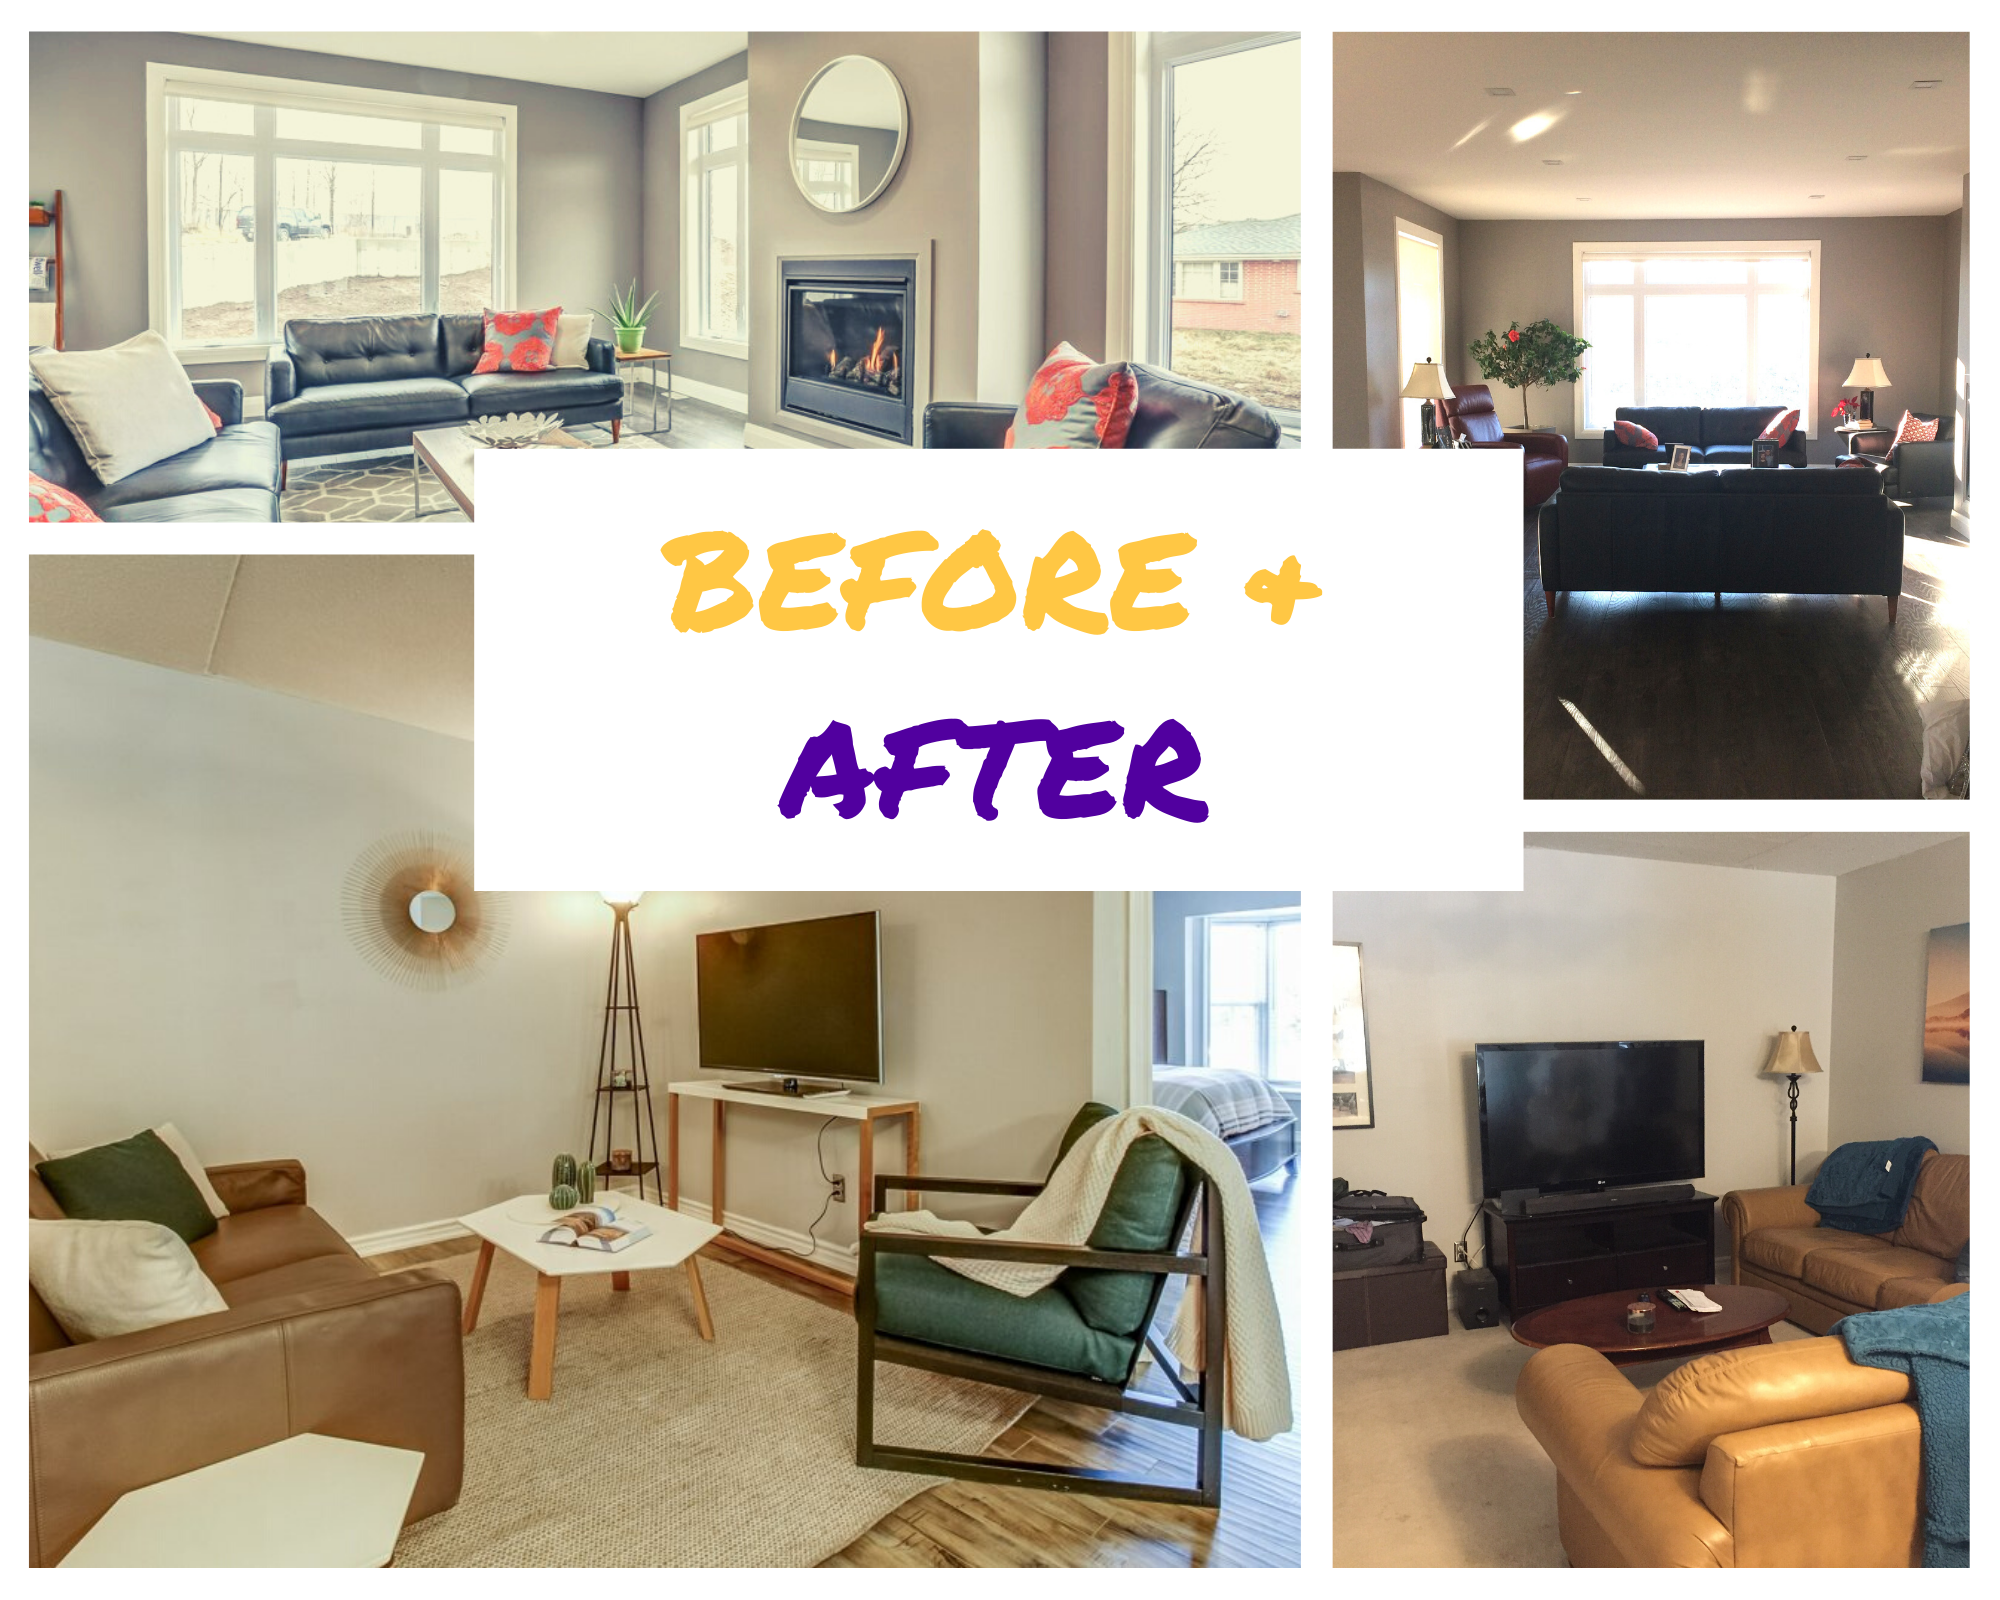 Photos That Show The Power Of Home Staging, Living Room Staging A House Before And After